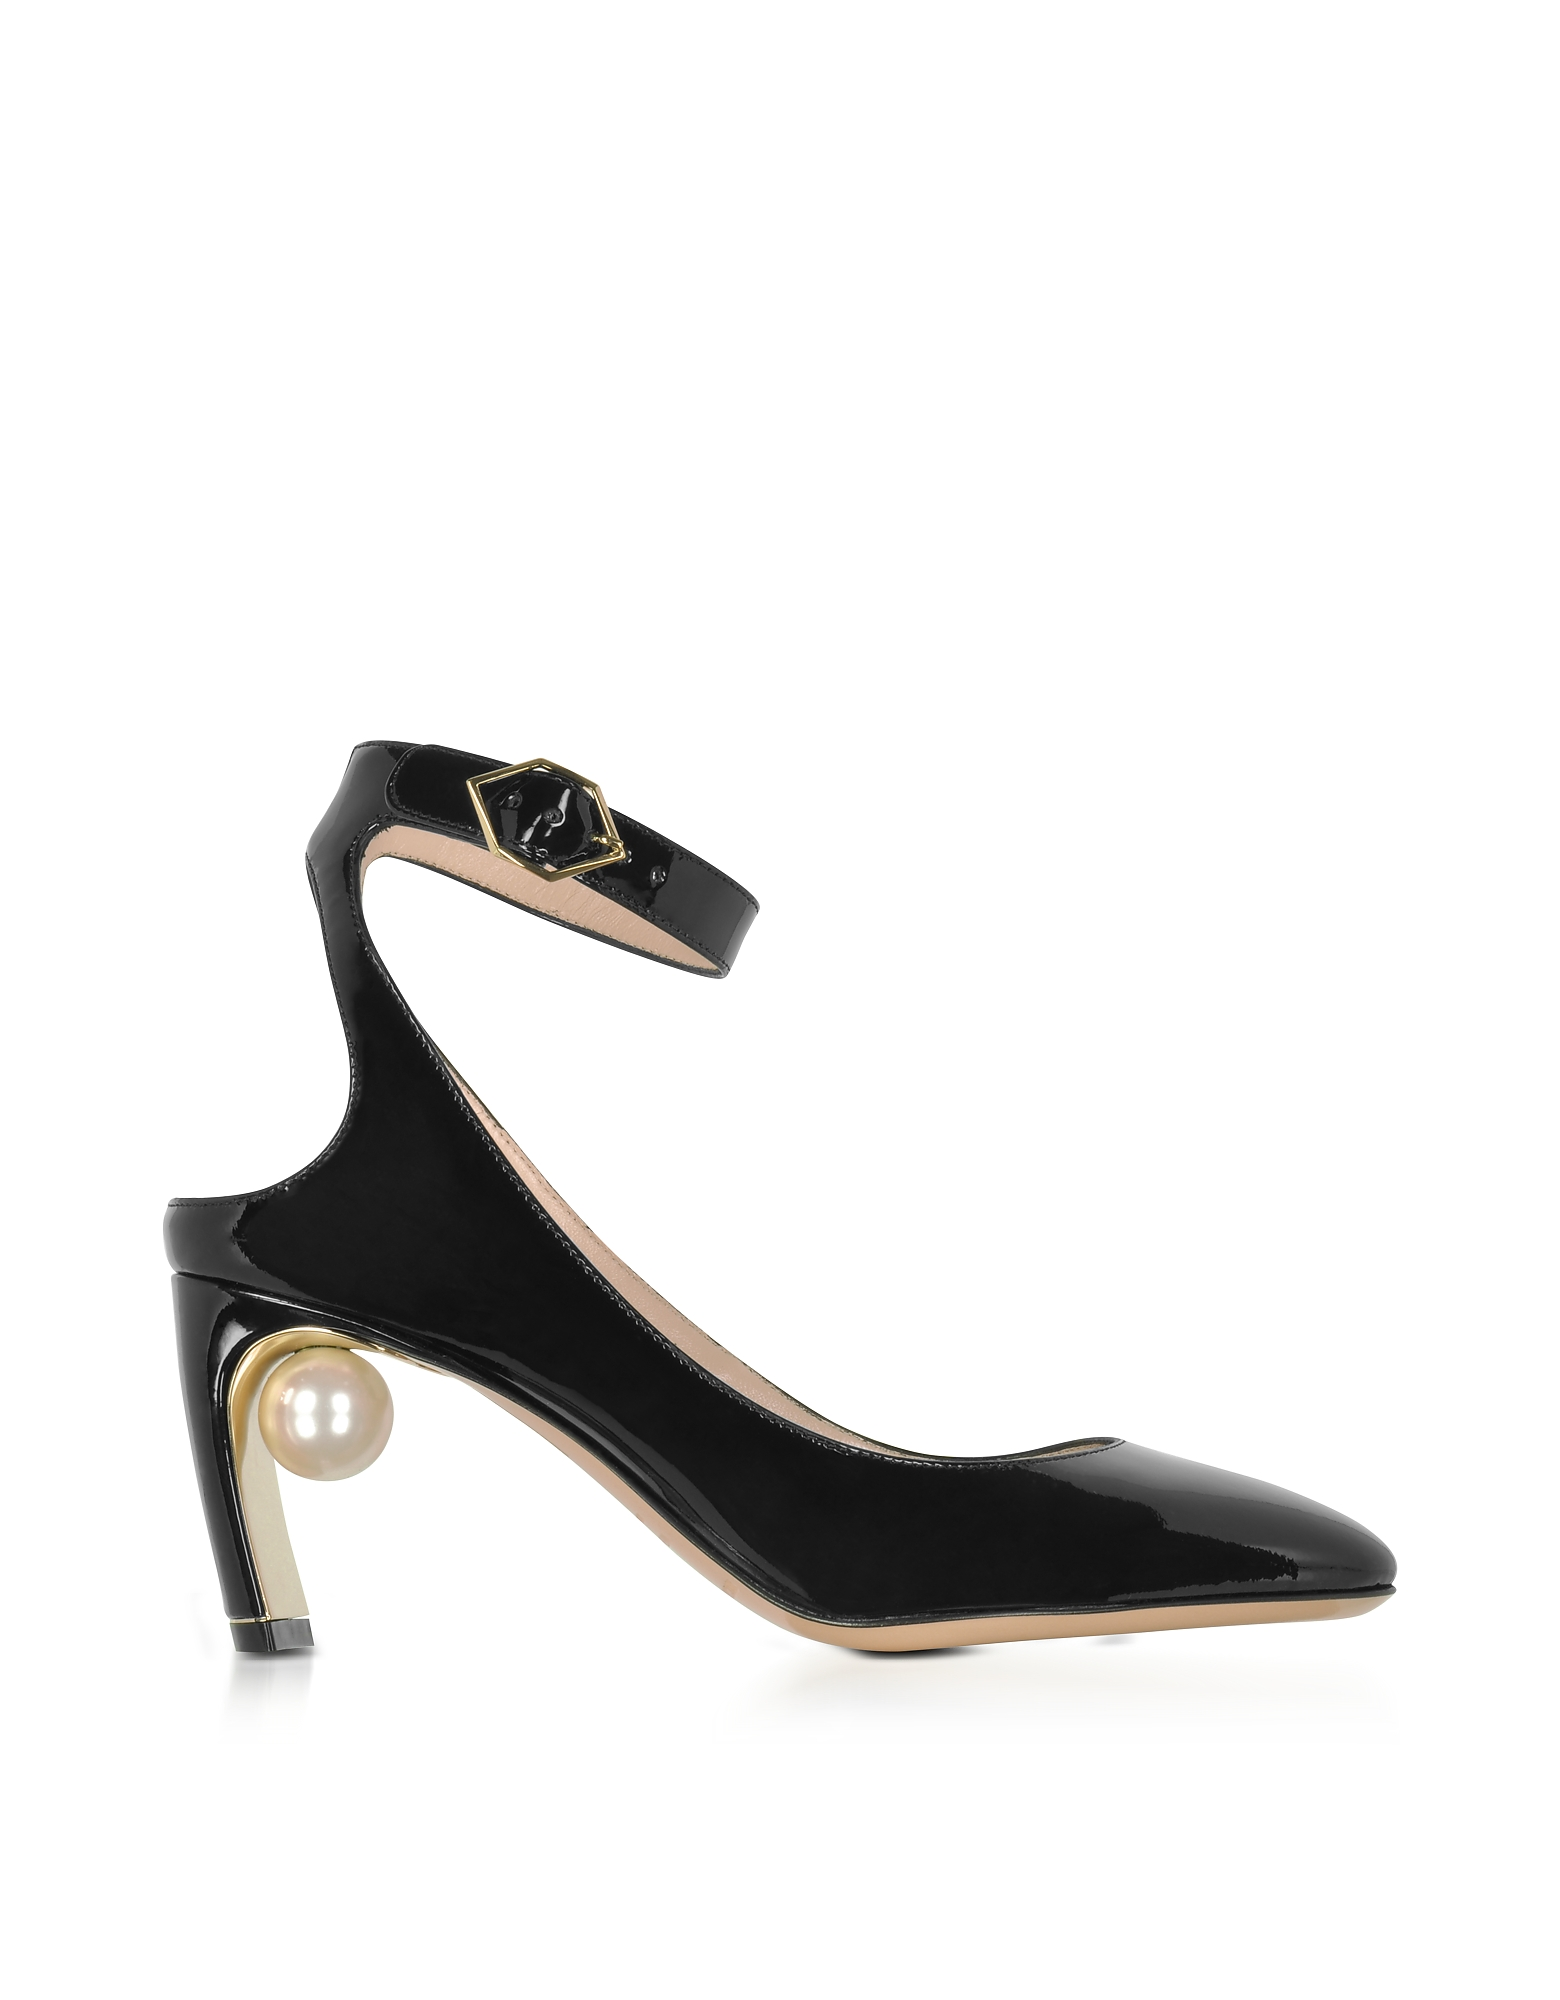 Nicholas Kirkwood Shoes, Lola Black Patent Leather Pearl Pump